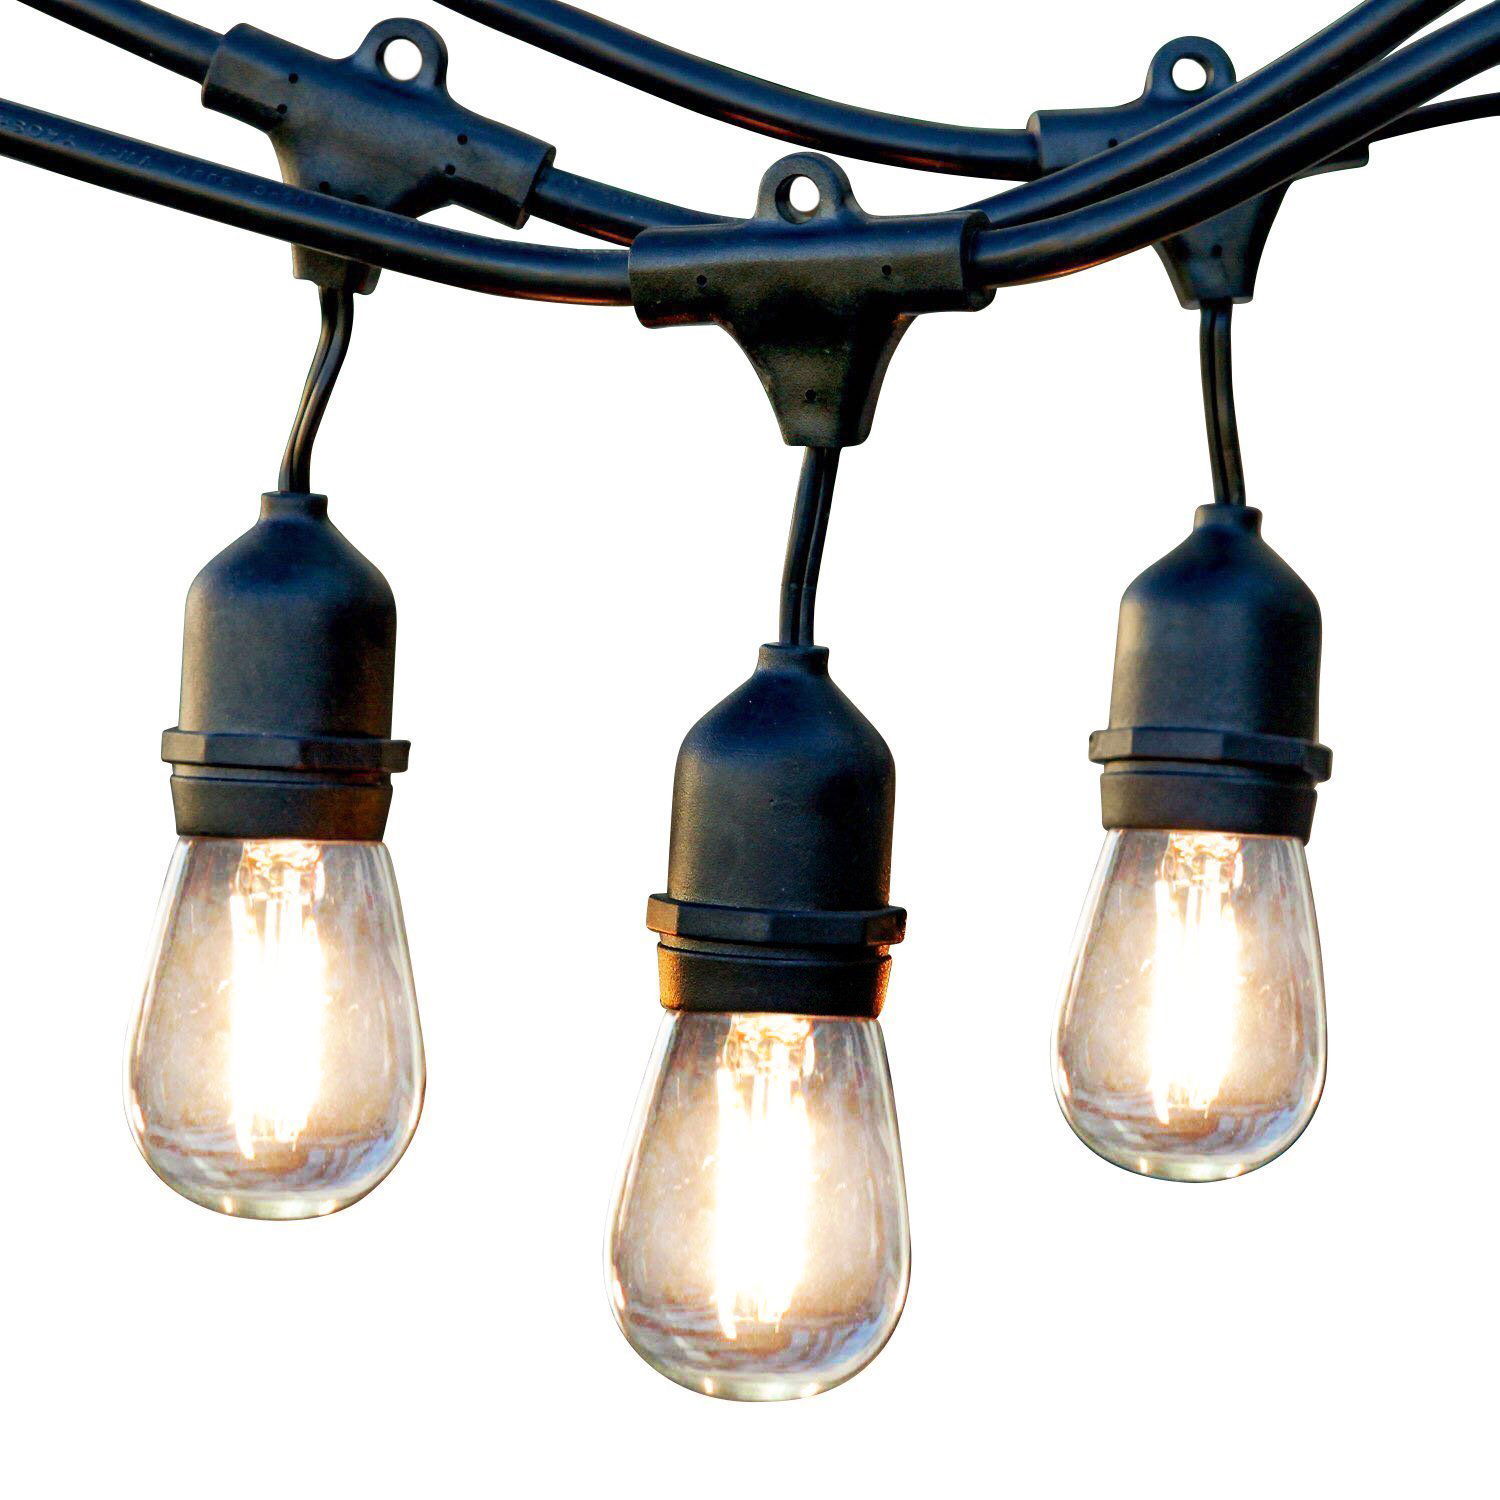 Newhouse Lighting Outdoor Weatherproof Commercial Grade Led String Lights With Hanging Sockets Technology